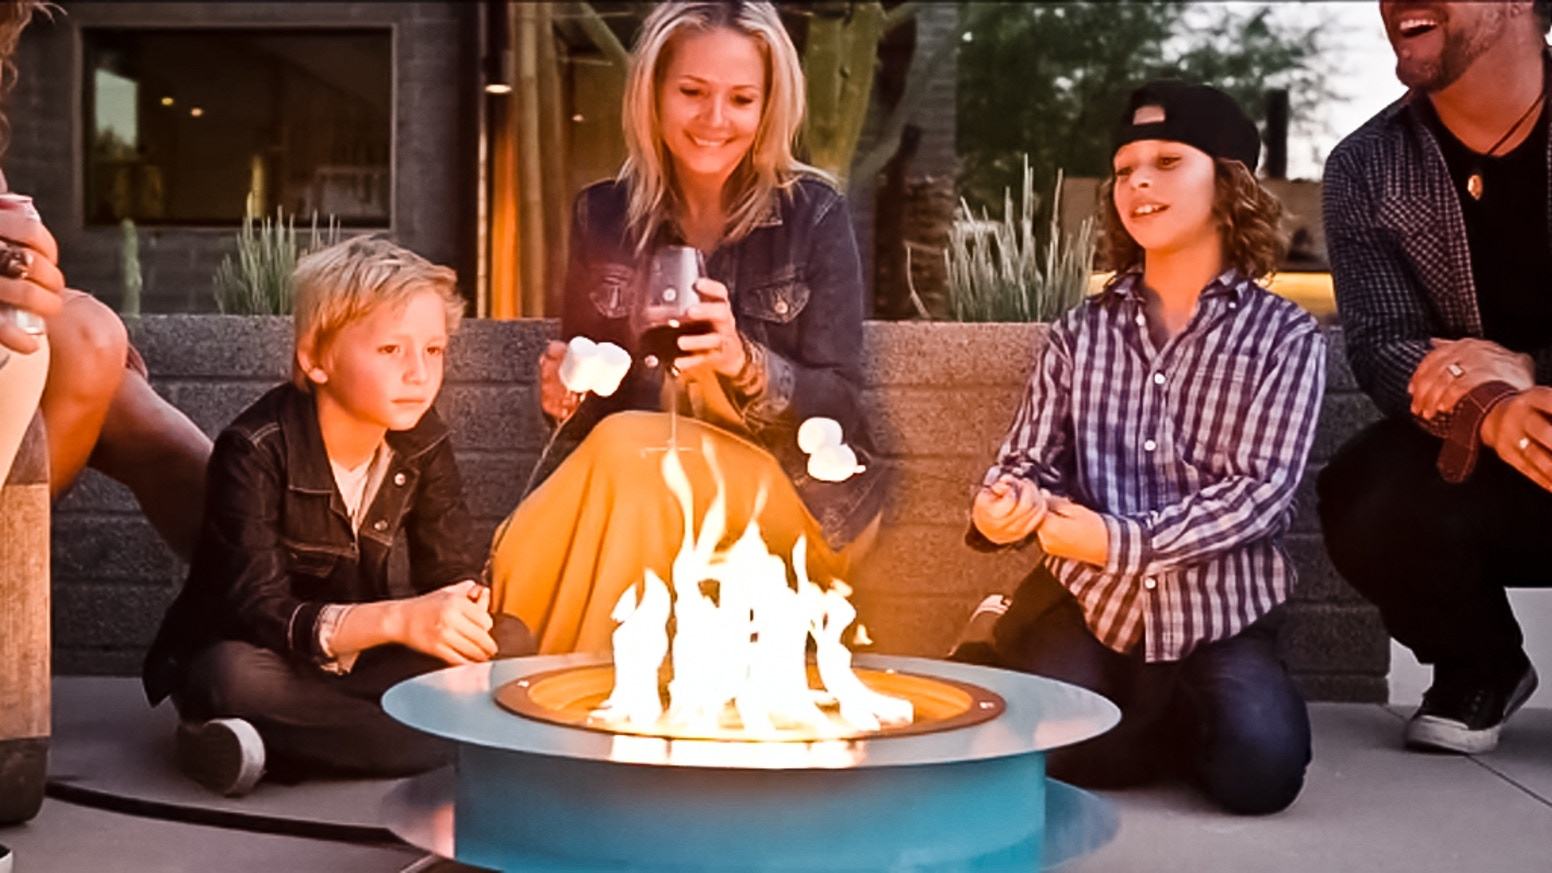 The World's Most Beautiful, Portable Fireplace That Sets Up in Seconds and Fuels Your Adventure.